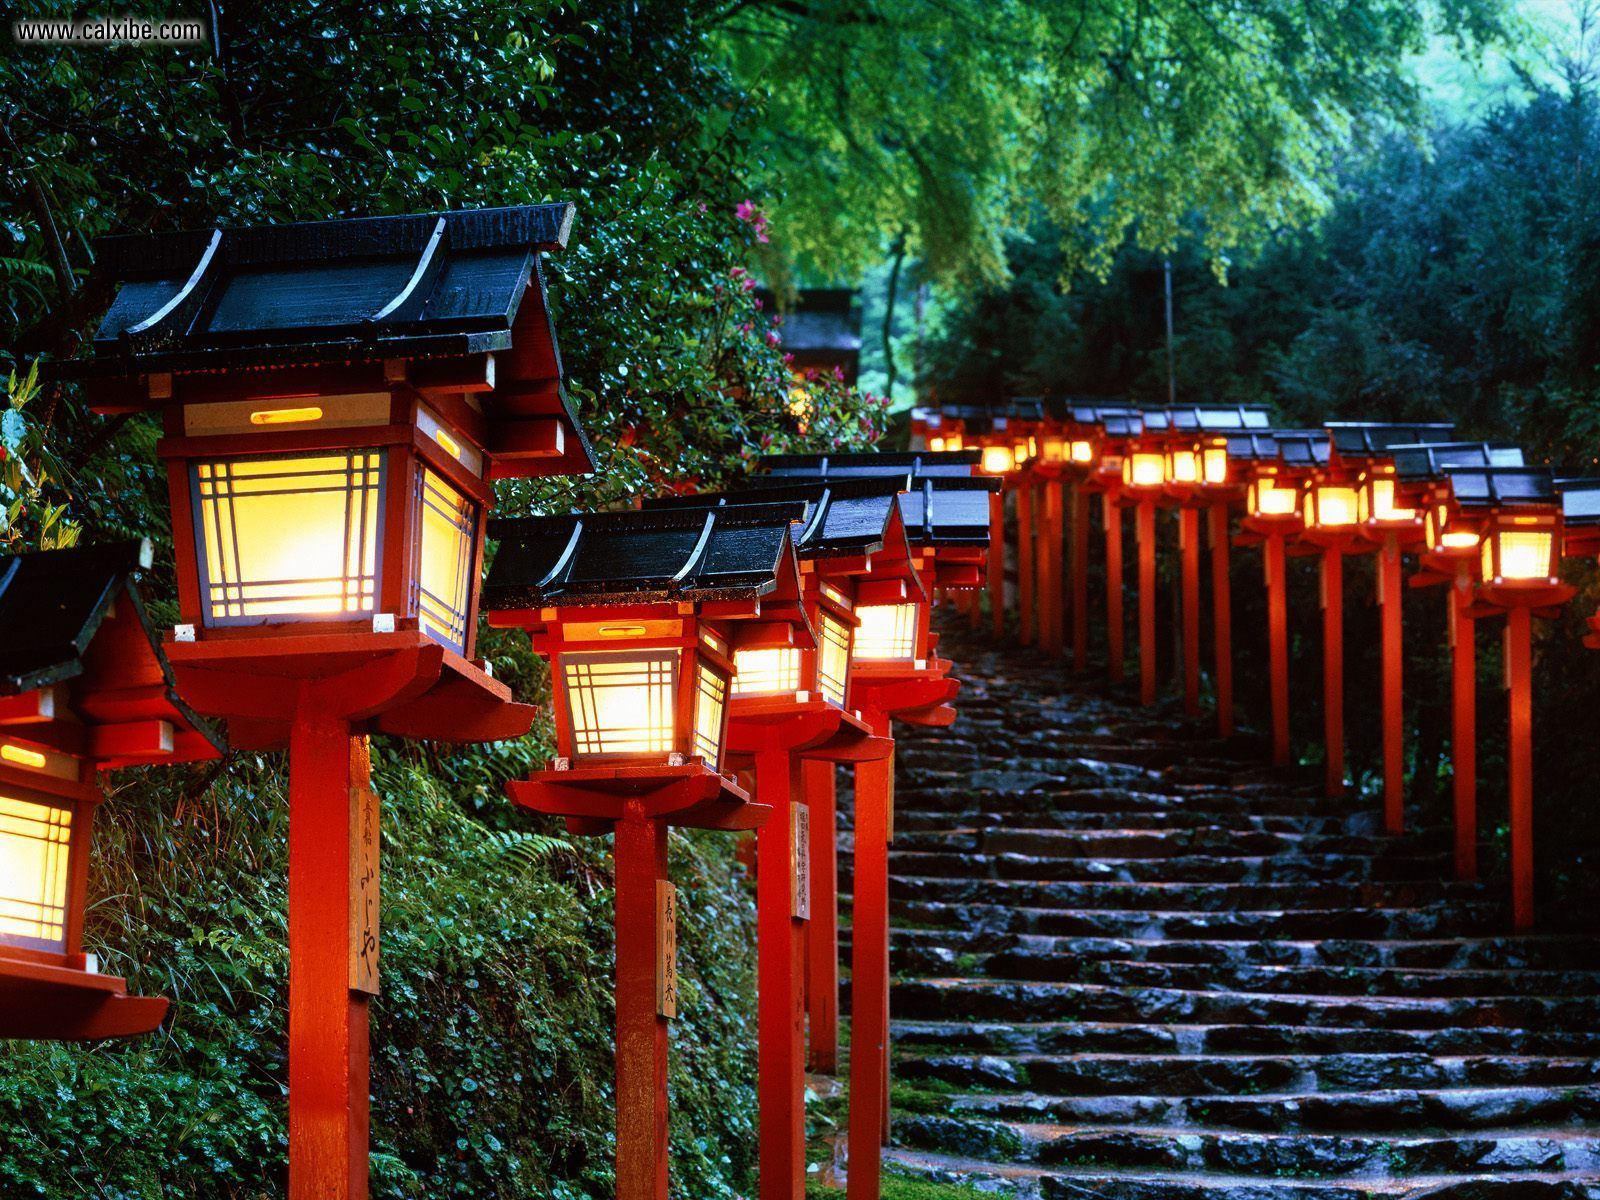 1600x1200 Known places: Kibune Shrine Kyoto Japan, desktop wallpaper nr. 4213